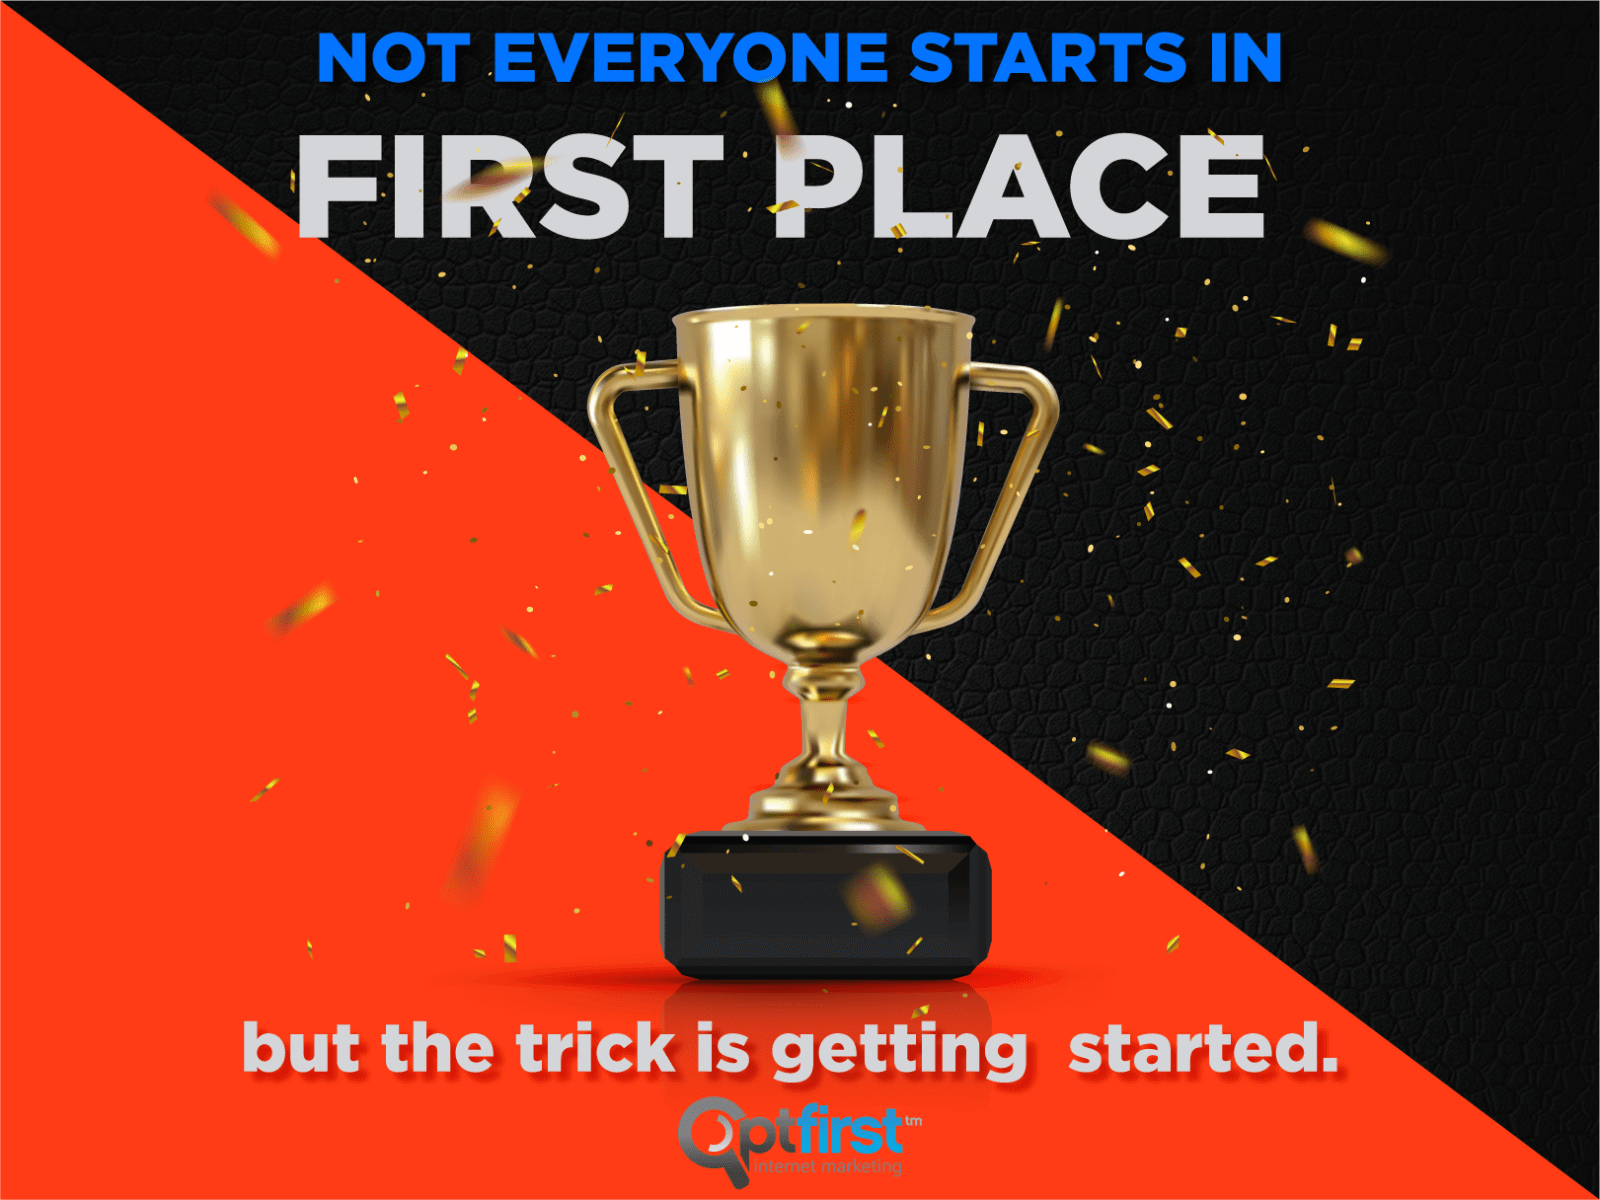 NOT EVERYONE STARTS IN FIRST PLACE – But the trick is getting started.